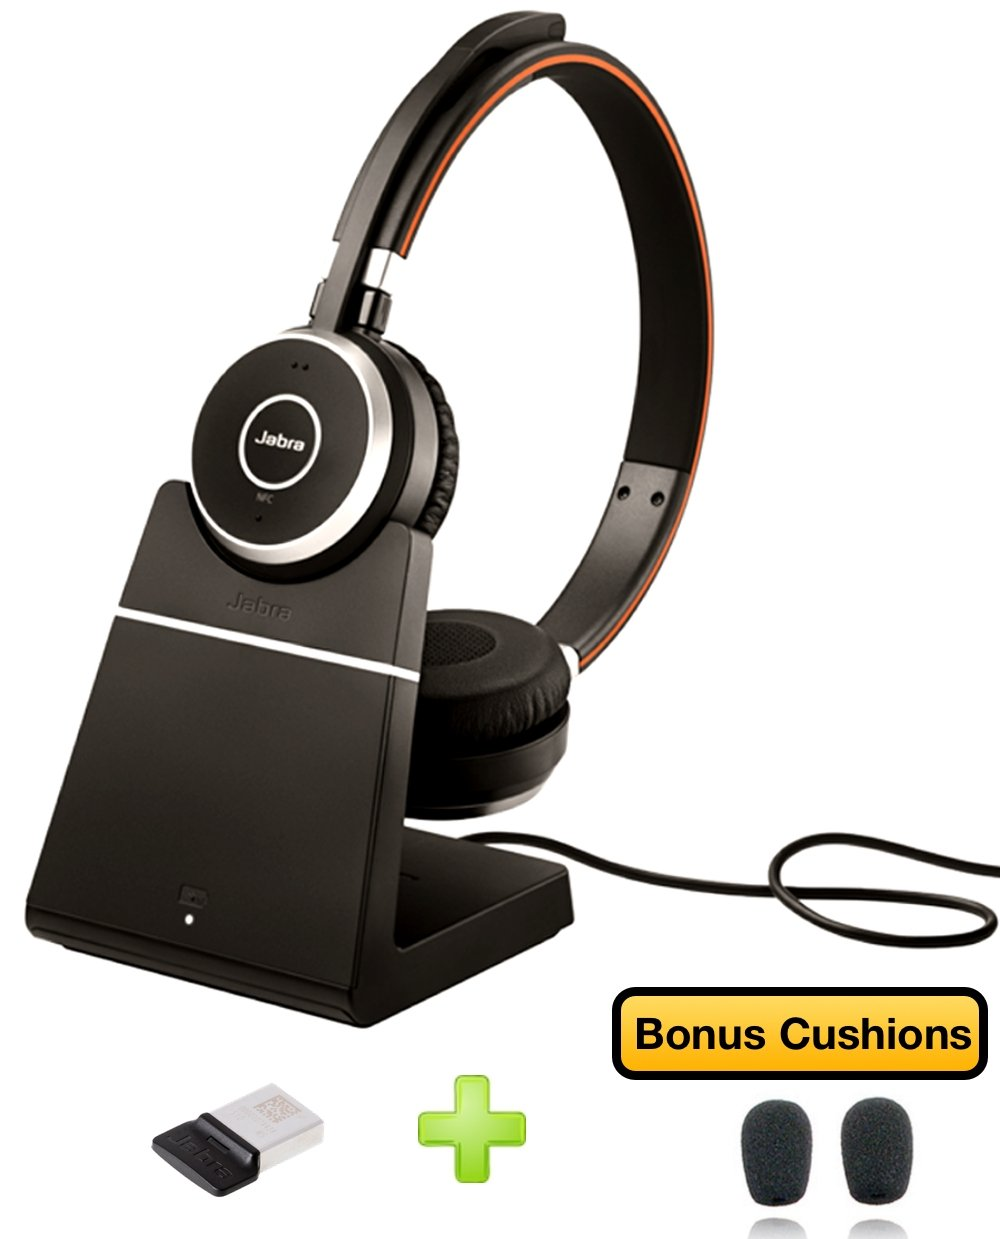 Jabra Evolve 65 Bluetooth Duo UC Wireless Headphone Bundle | Bonus Mic Cushions, USB Dongle, Charging Stand | Compatible with Softphones, Streaming Music, Smartphones, Tablets, PC/MAC 6599-823-499-B by GN/Jabra Audio